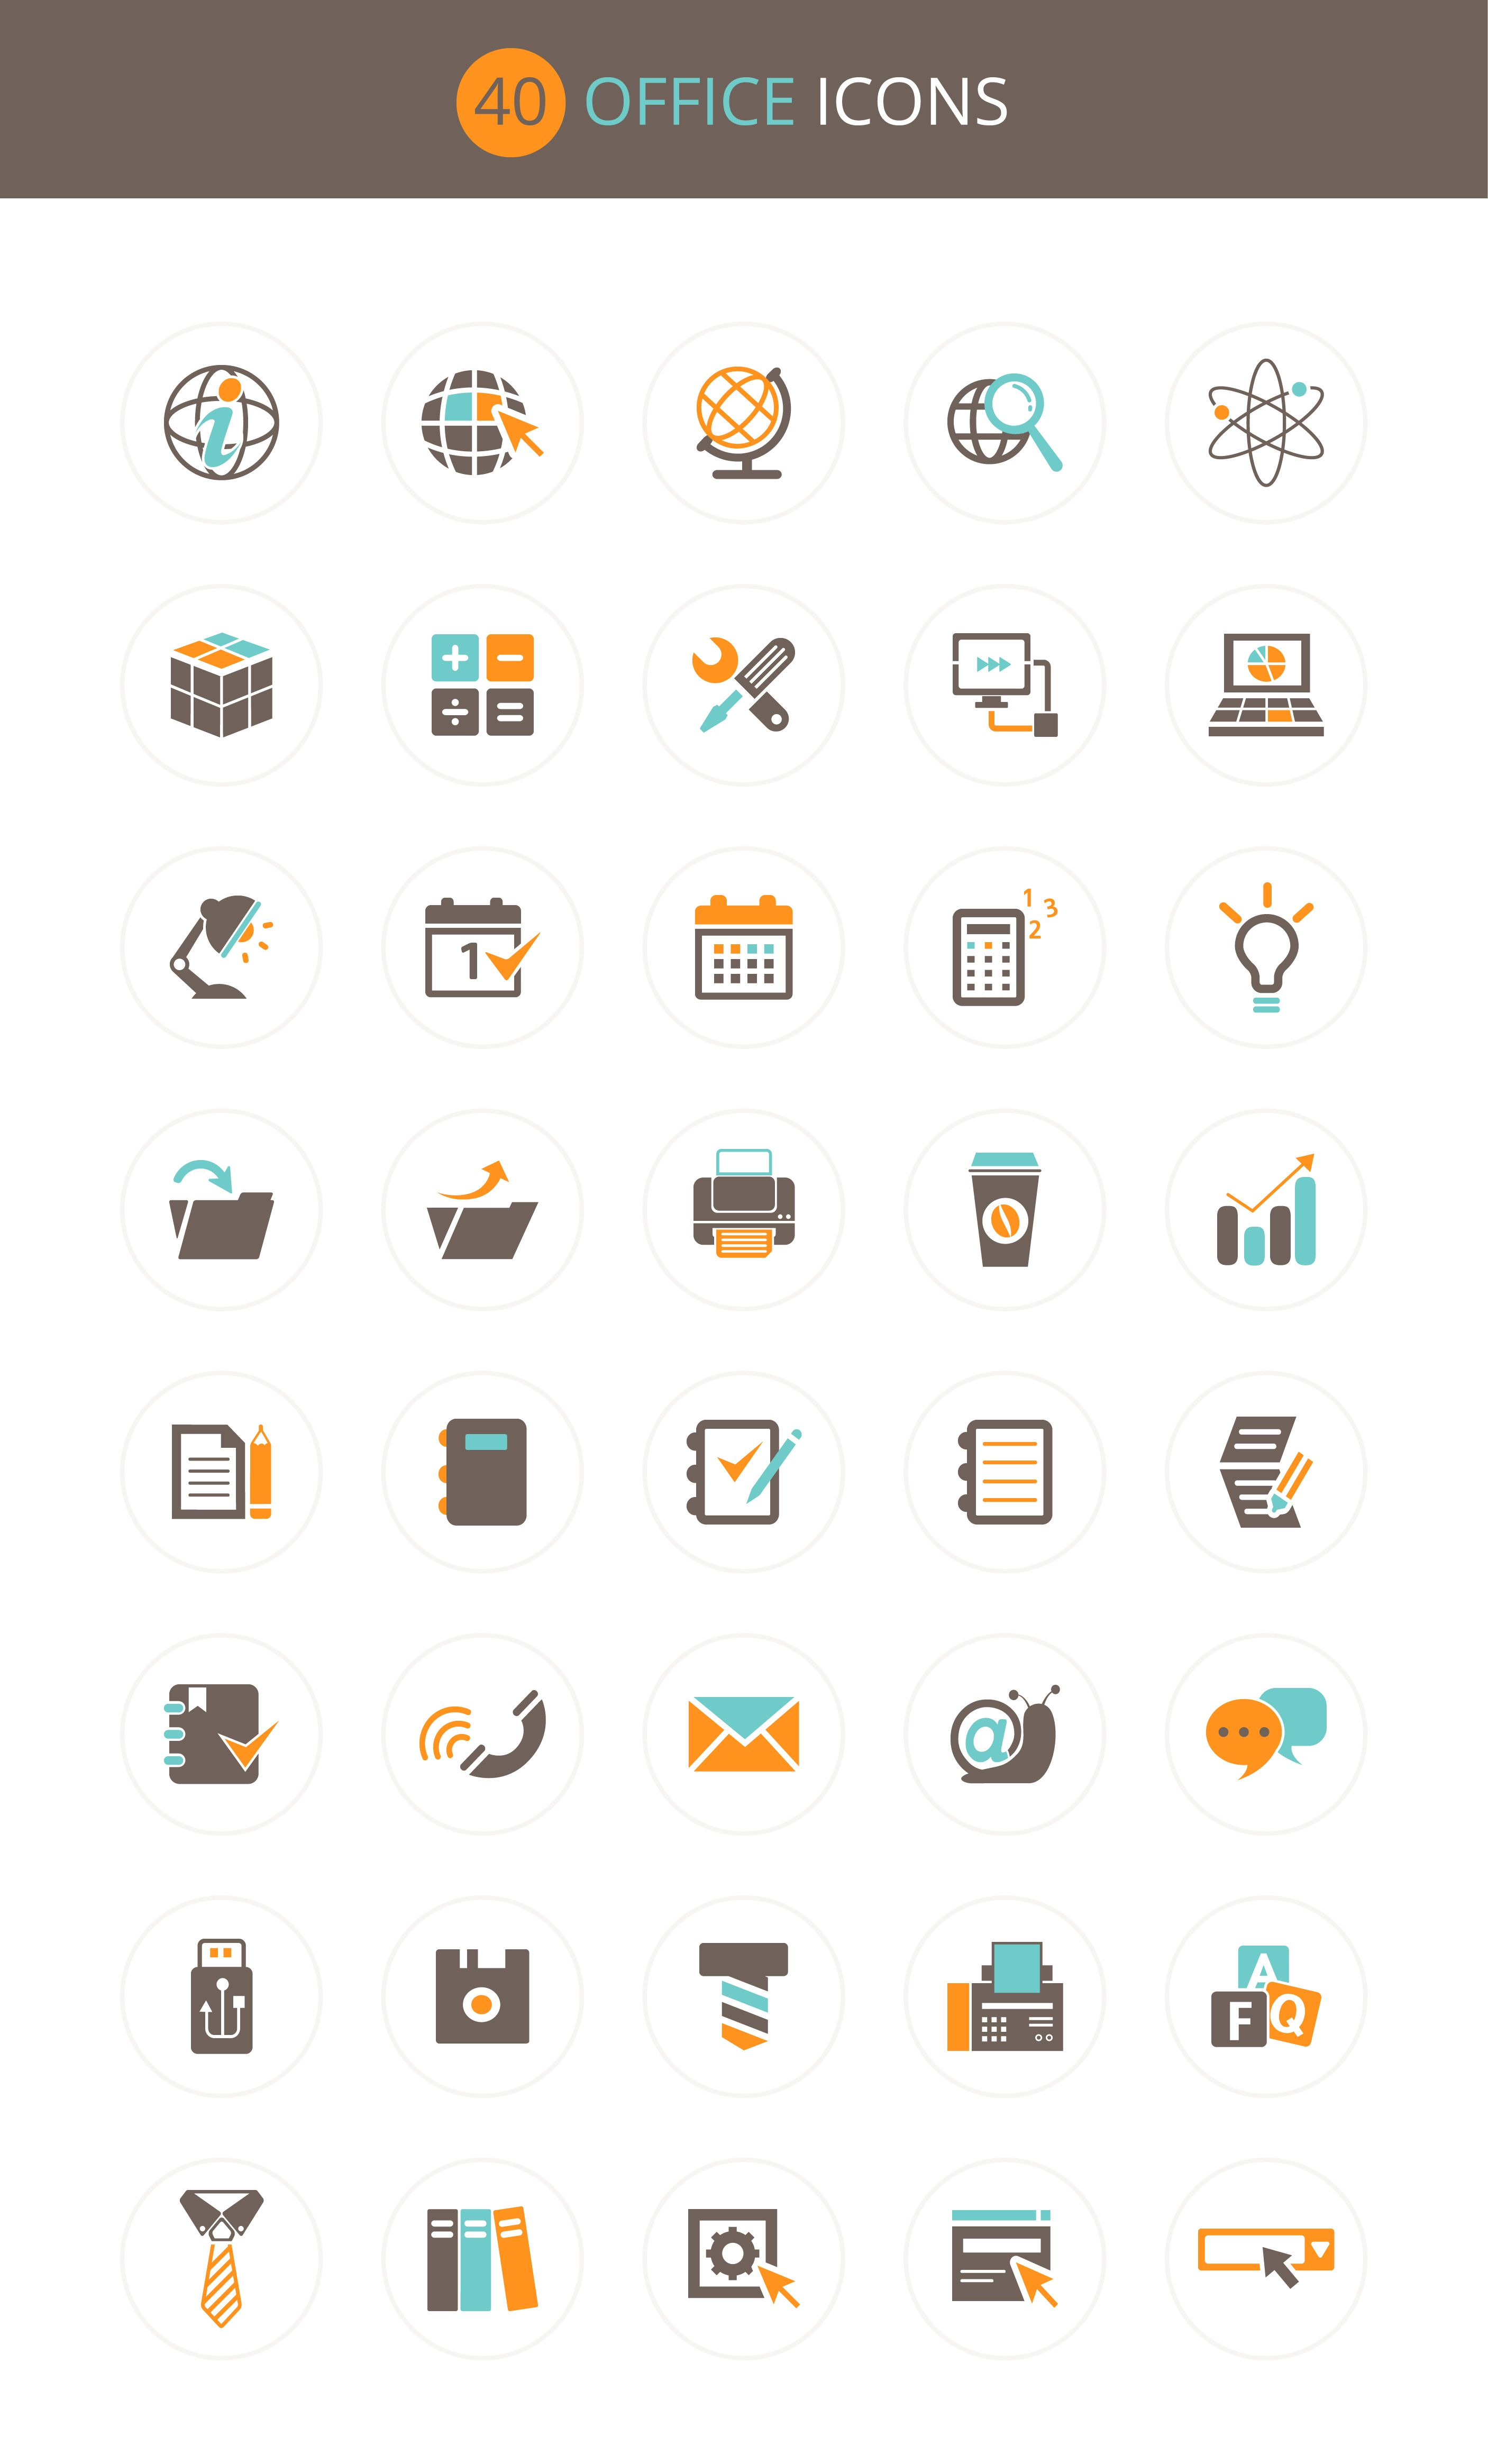 Free Download : Office Icon Set (40 icons – PSD , AI , EPS